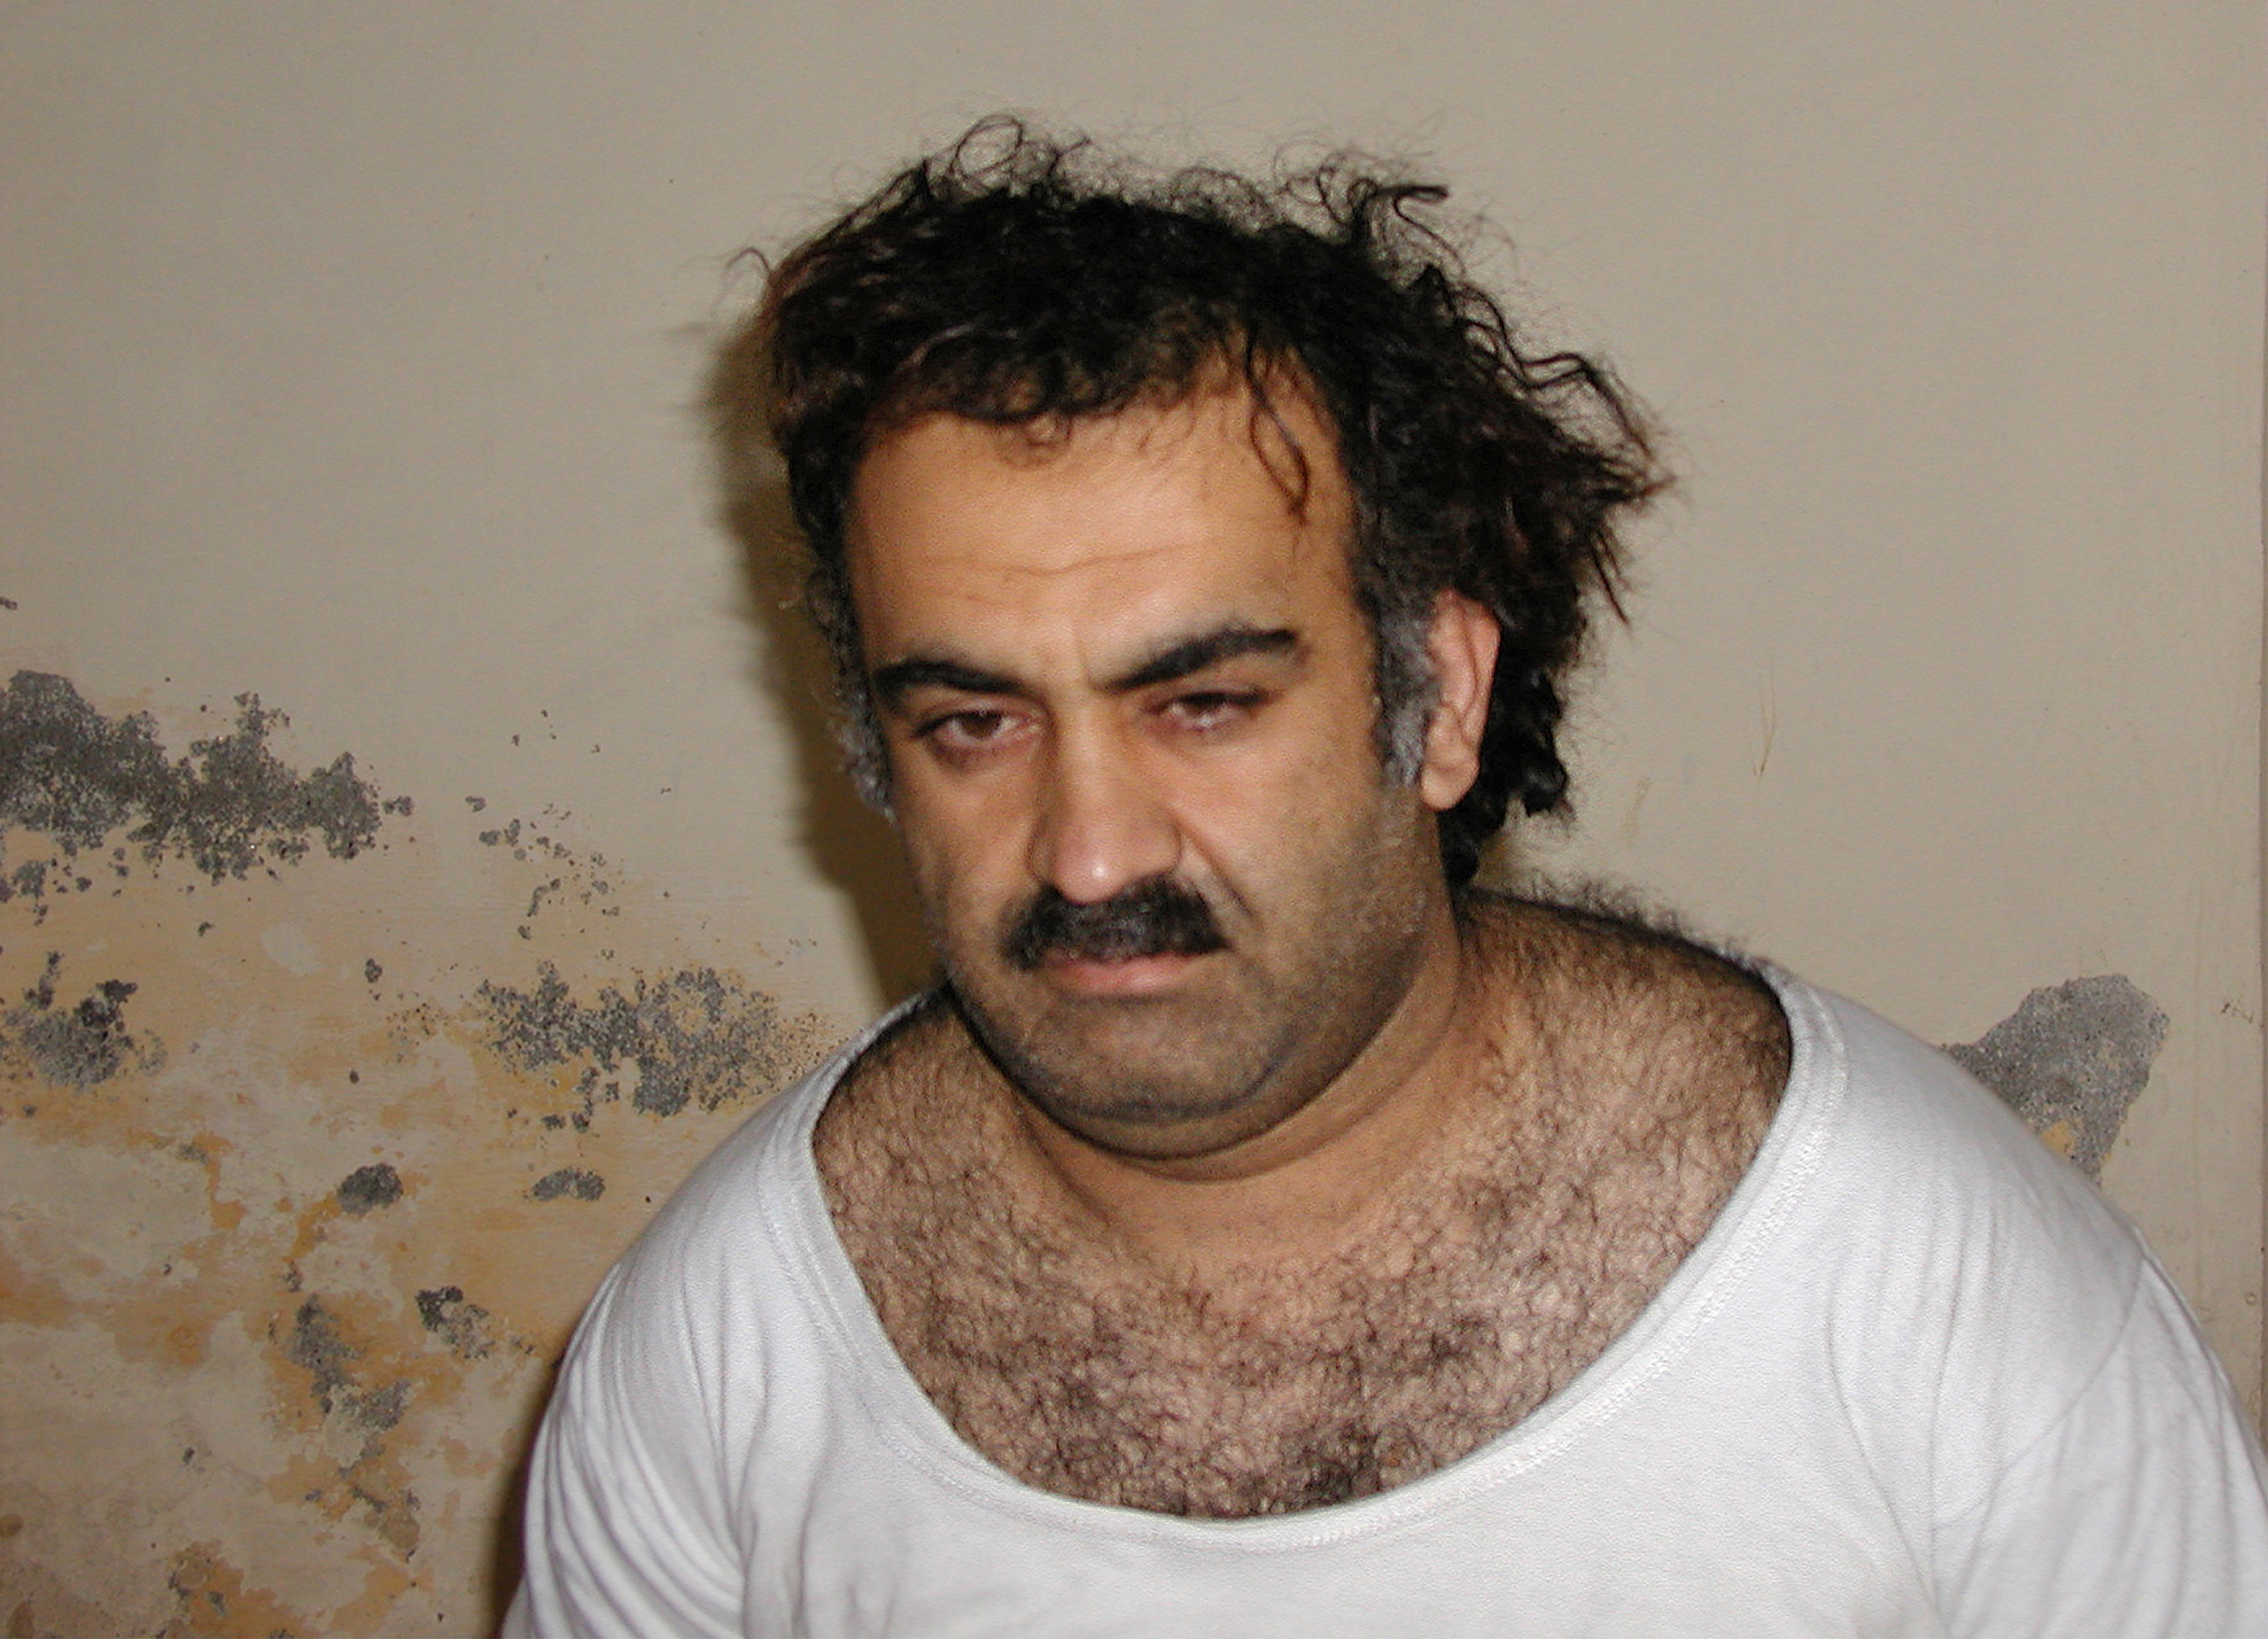 Khalid Sheikh Mohammed, al-Qaida's No.3, operational leader, and alleged September 11 2001 mastermind, is seen shortly after his CIA capture during a raid in Pakistan.